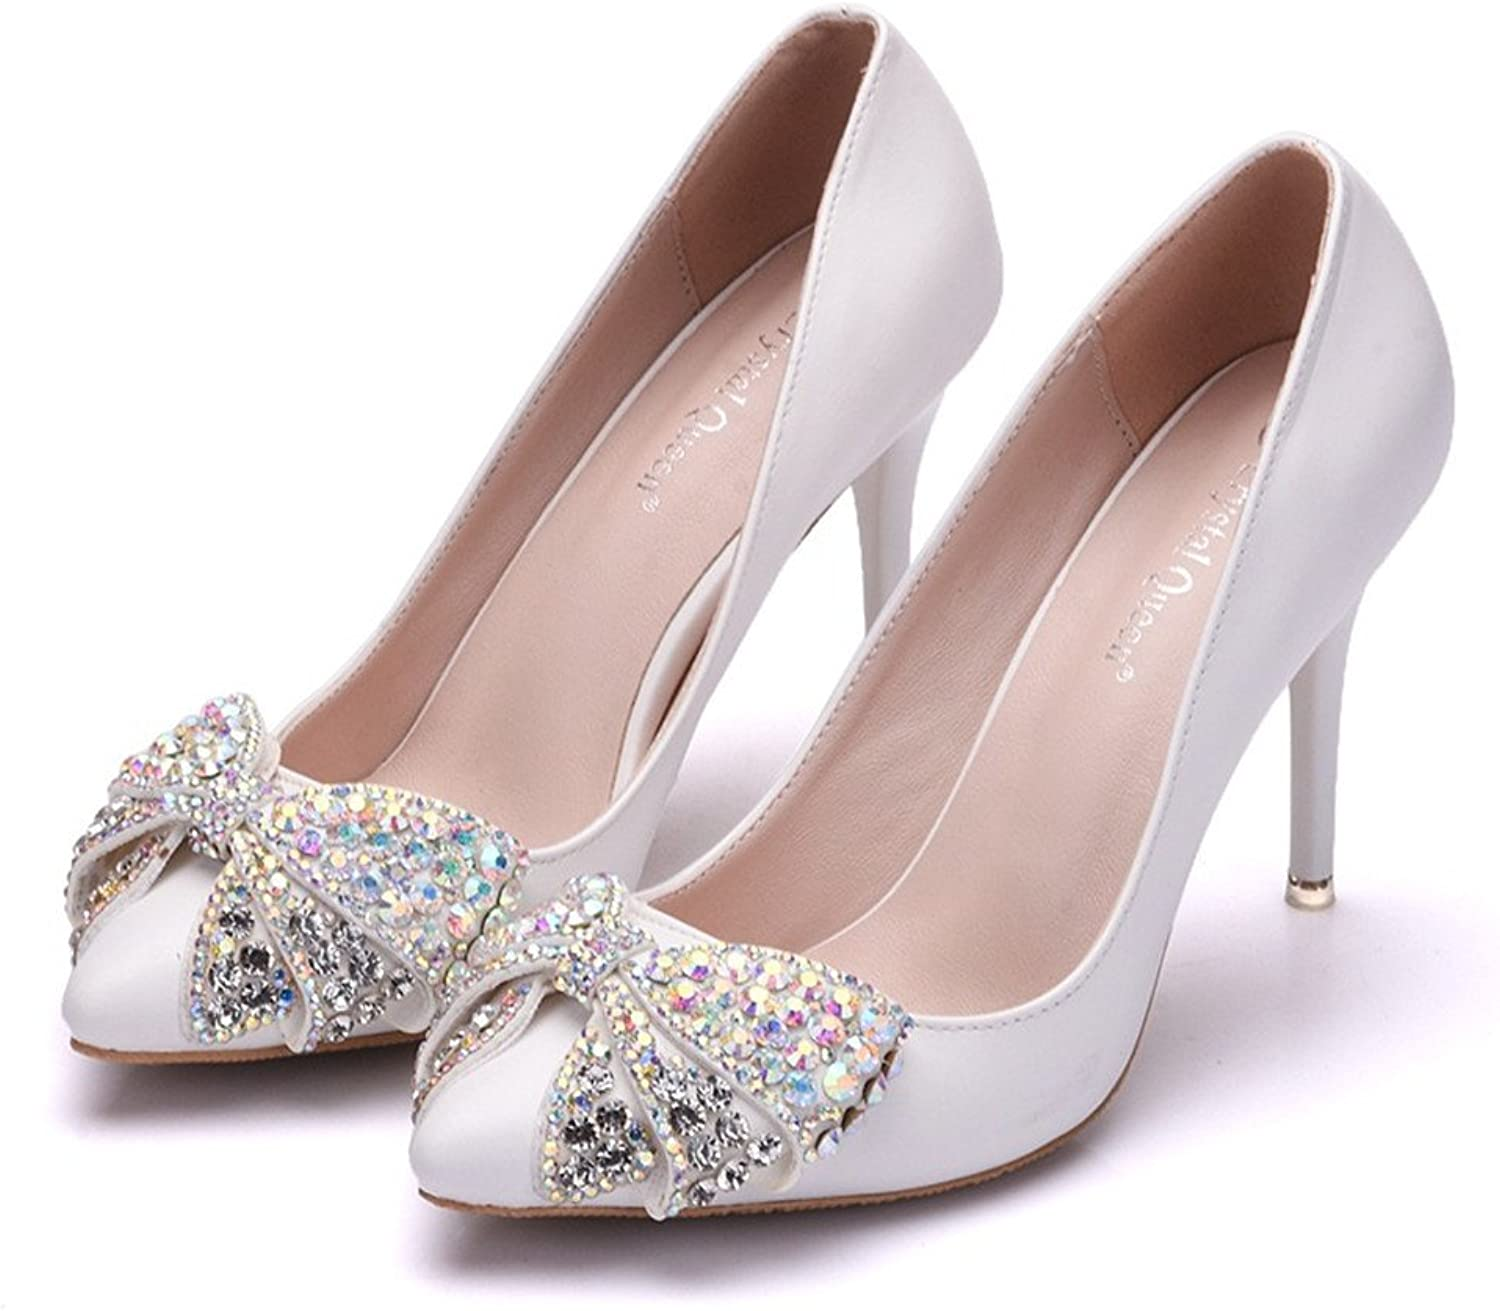 HYP Wedding Women shoes Wedding shoes Women Pumps Closed Toe Wedding Party Court shoes Bridesmaid Bridal shoes color high-Heeled Single shoes